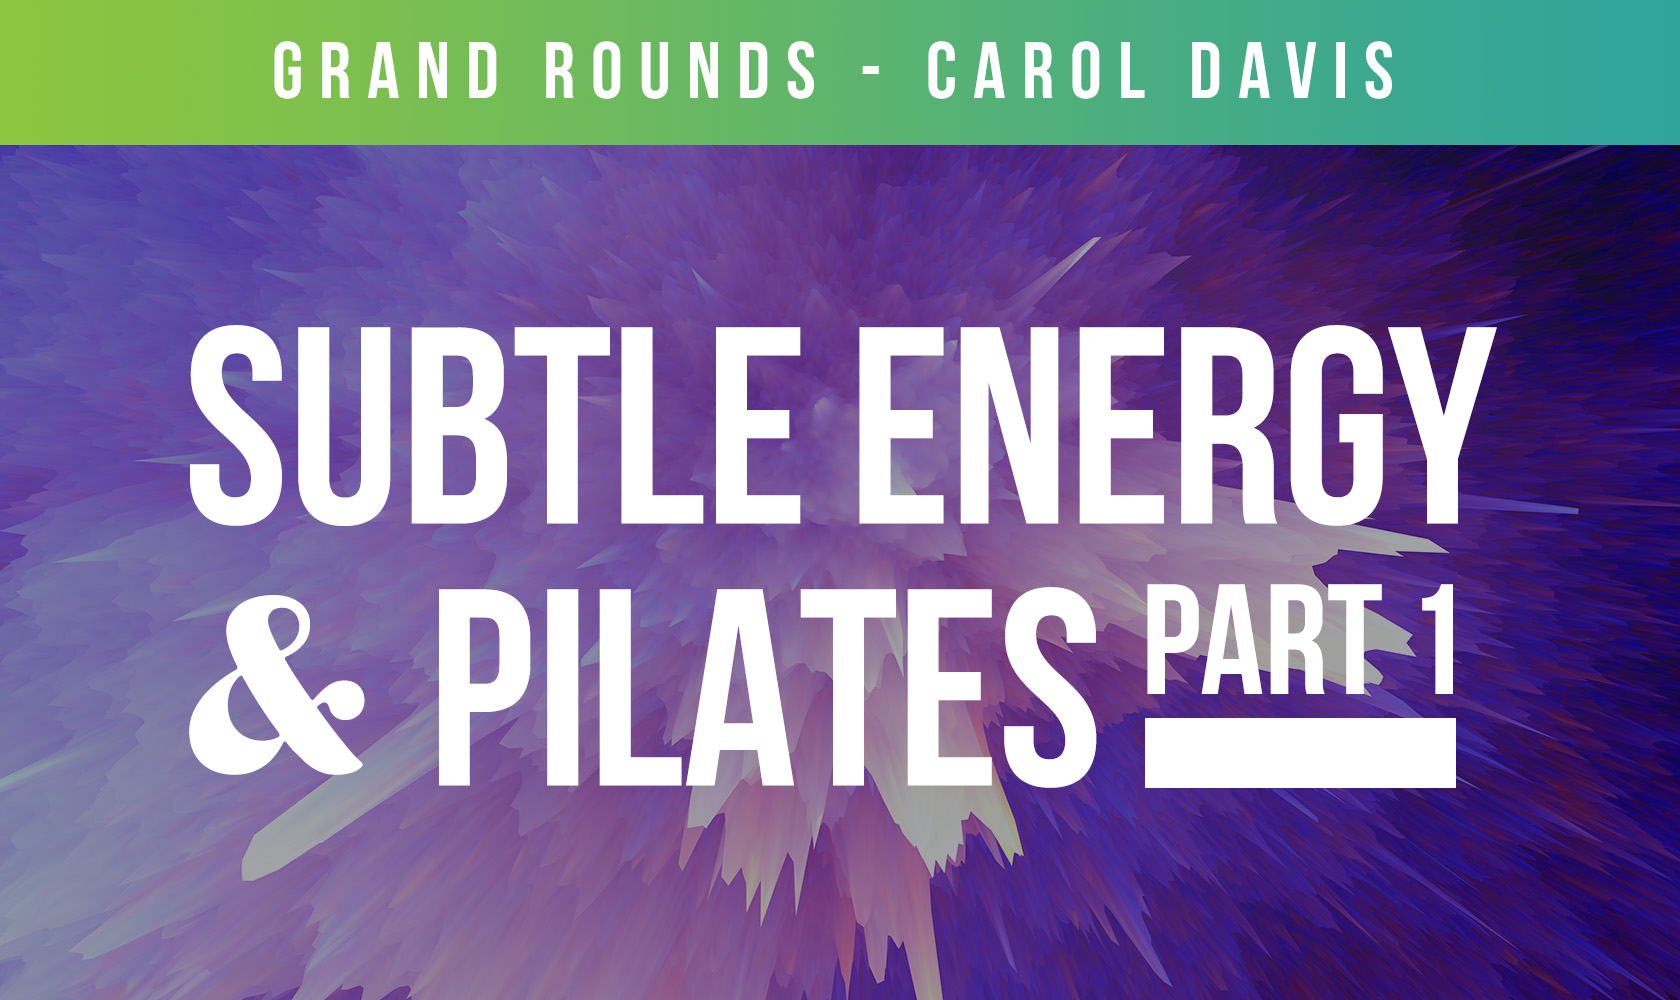 Grand Rounds, Subtle Energy & Pilates: Part 1